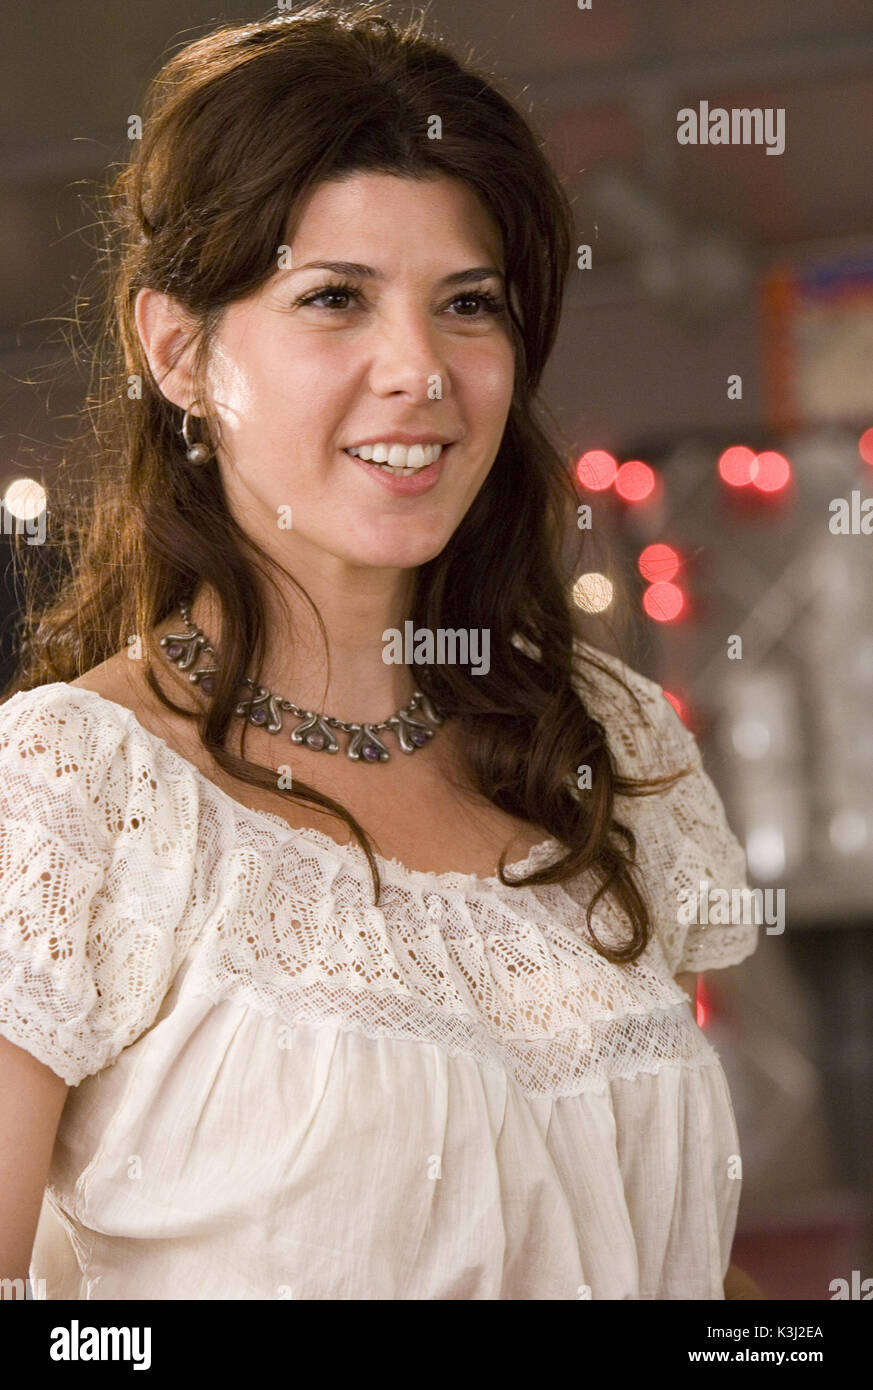 """WILD HOGS MARISA TOMEI """"Wild Hogs"""" Marisa Tomei ©Touchstone Pictures. All rights reserved.     Date: 2006 - Stock Image"""